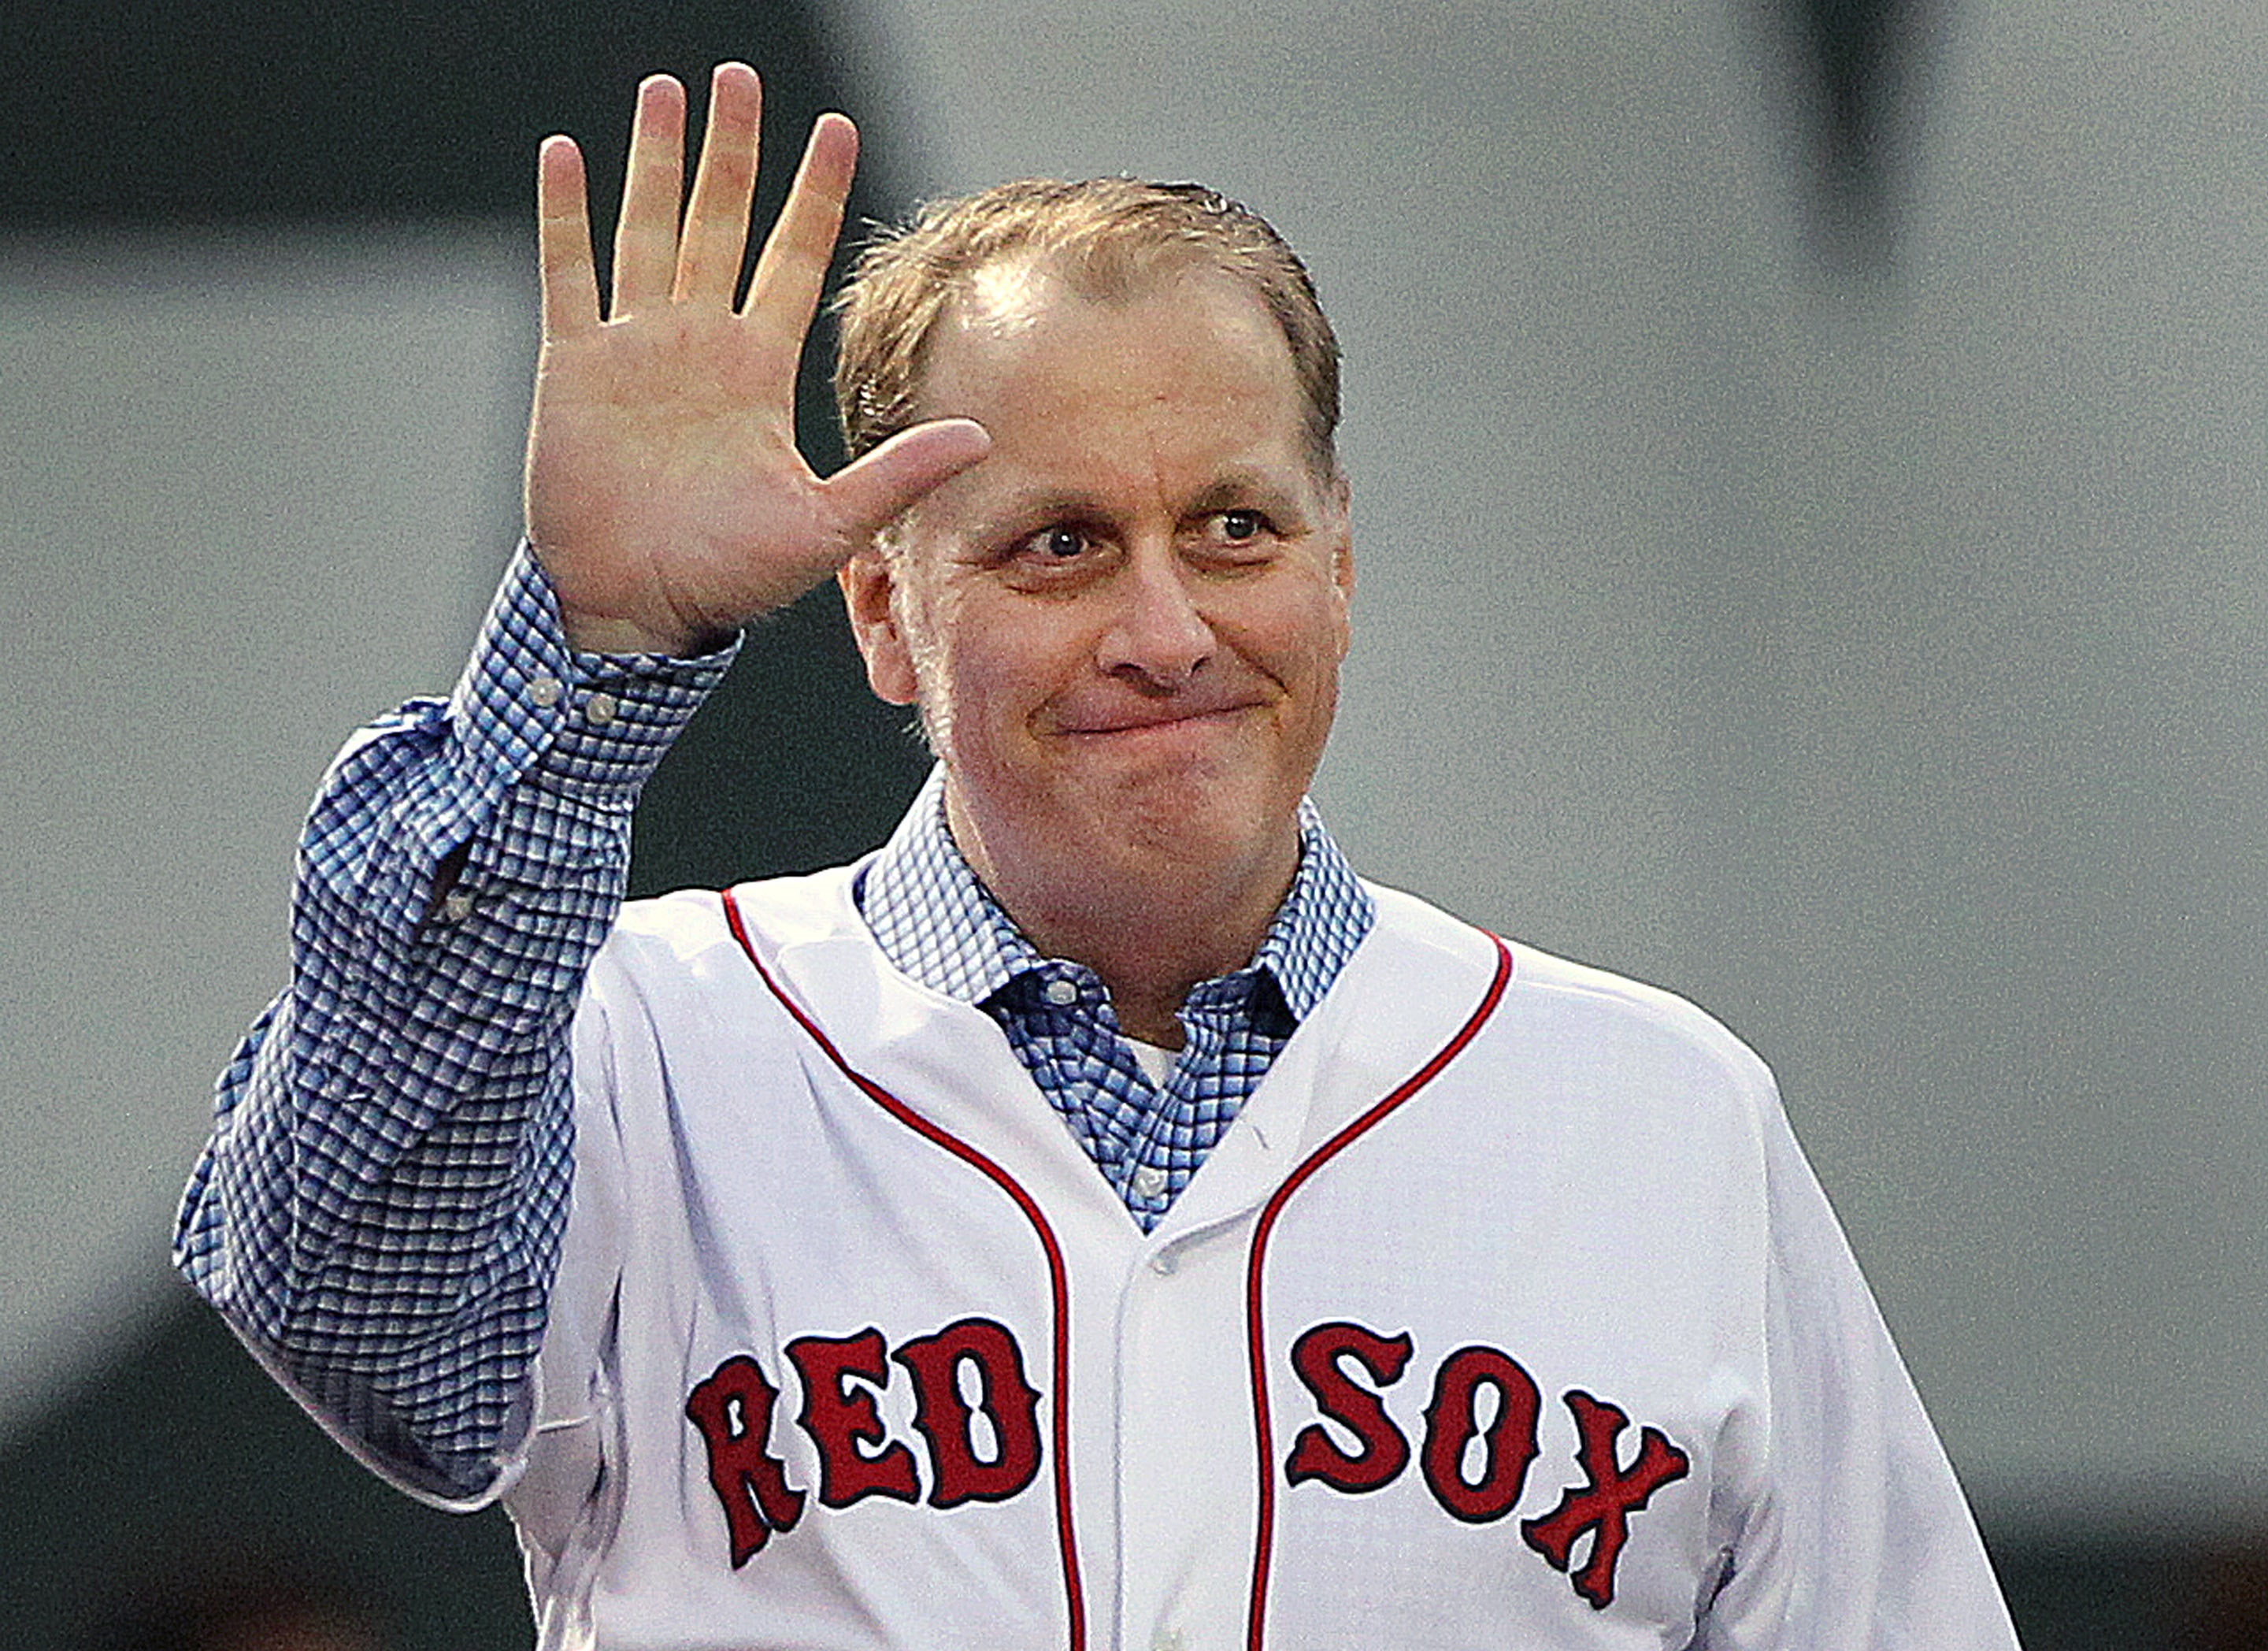 Former Boston Red Sox pitcher Curt Schilling is honored before a game between the Red Sox and the Atlanta Braves on May 28, 2014 in Boston.